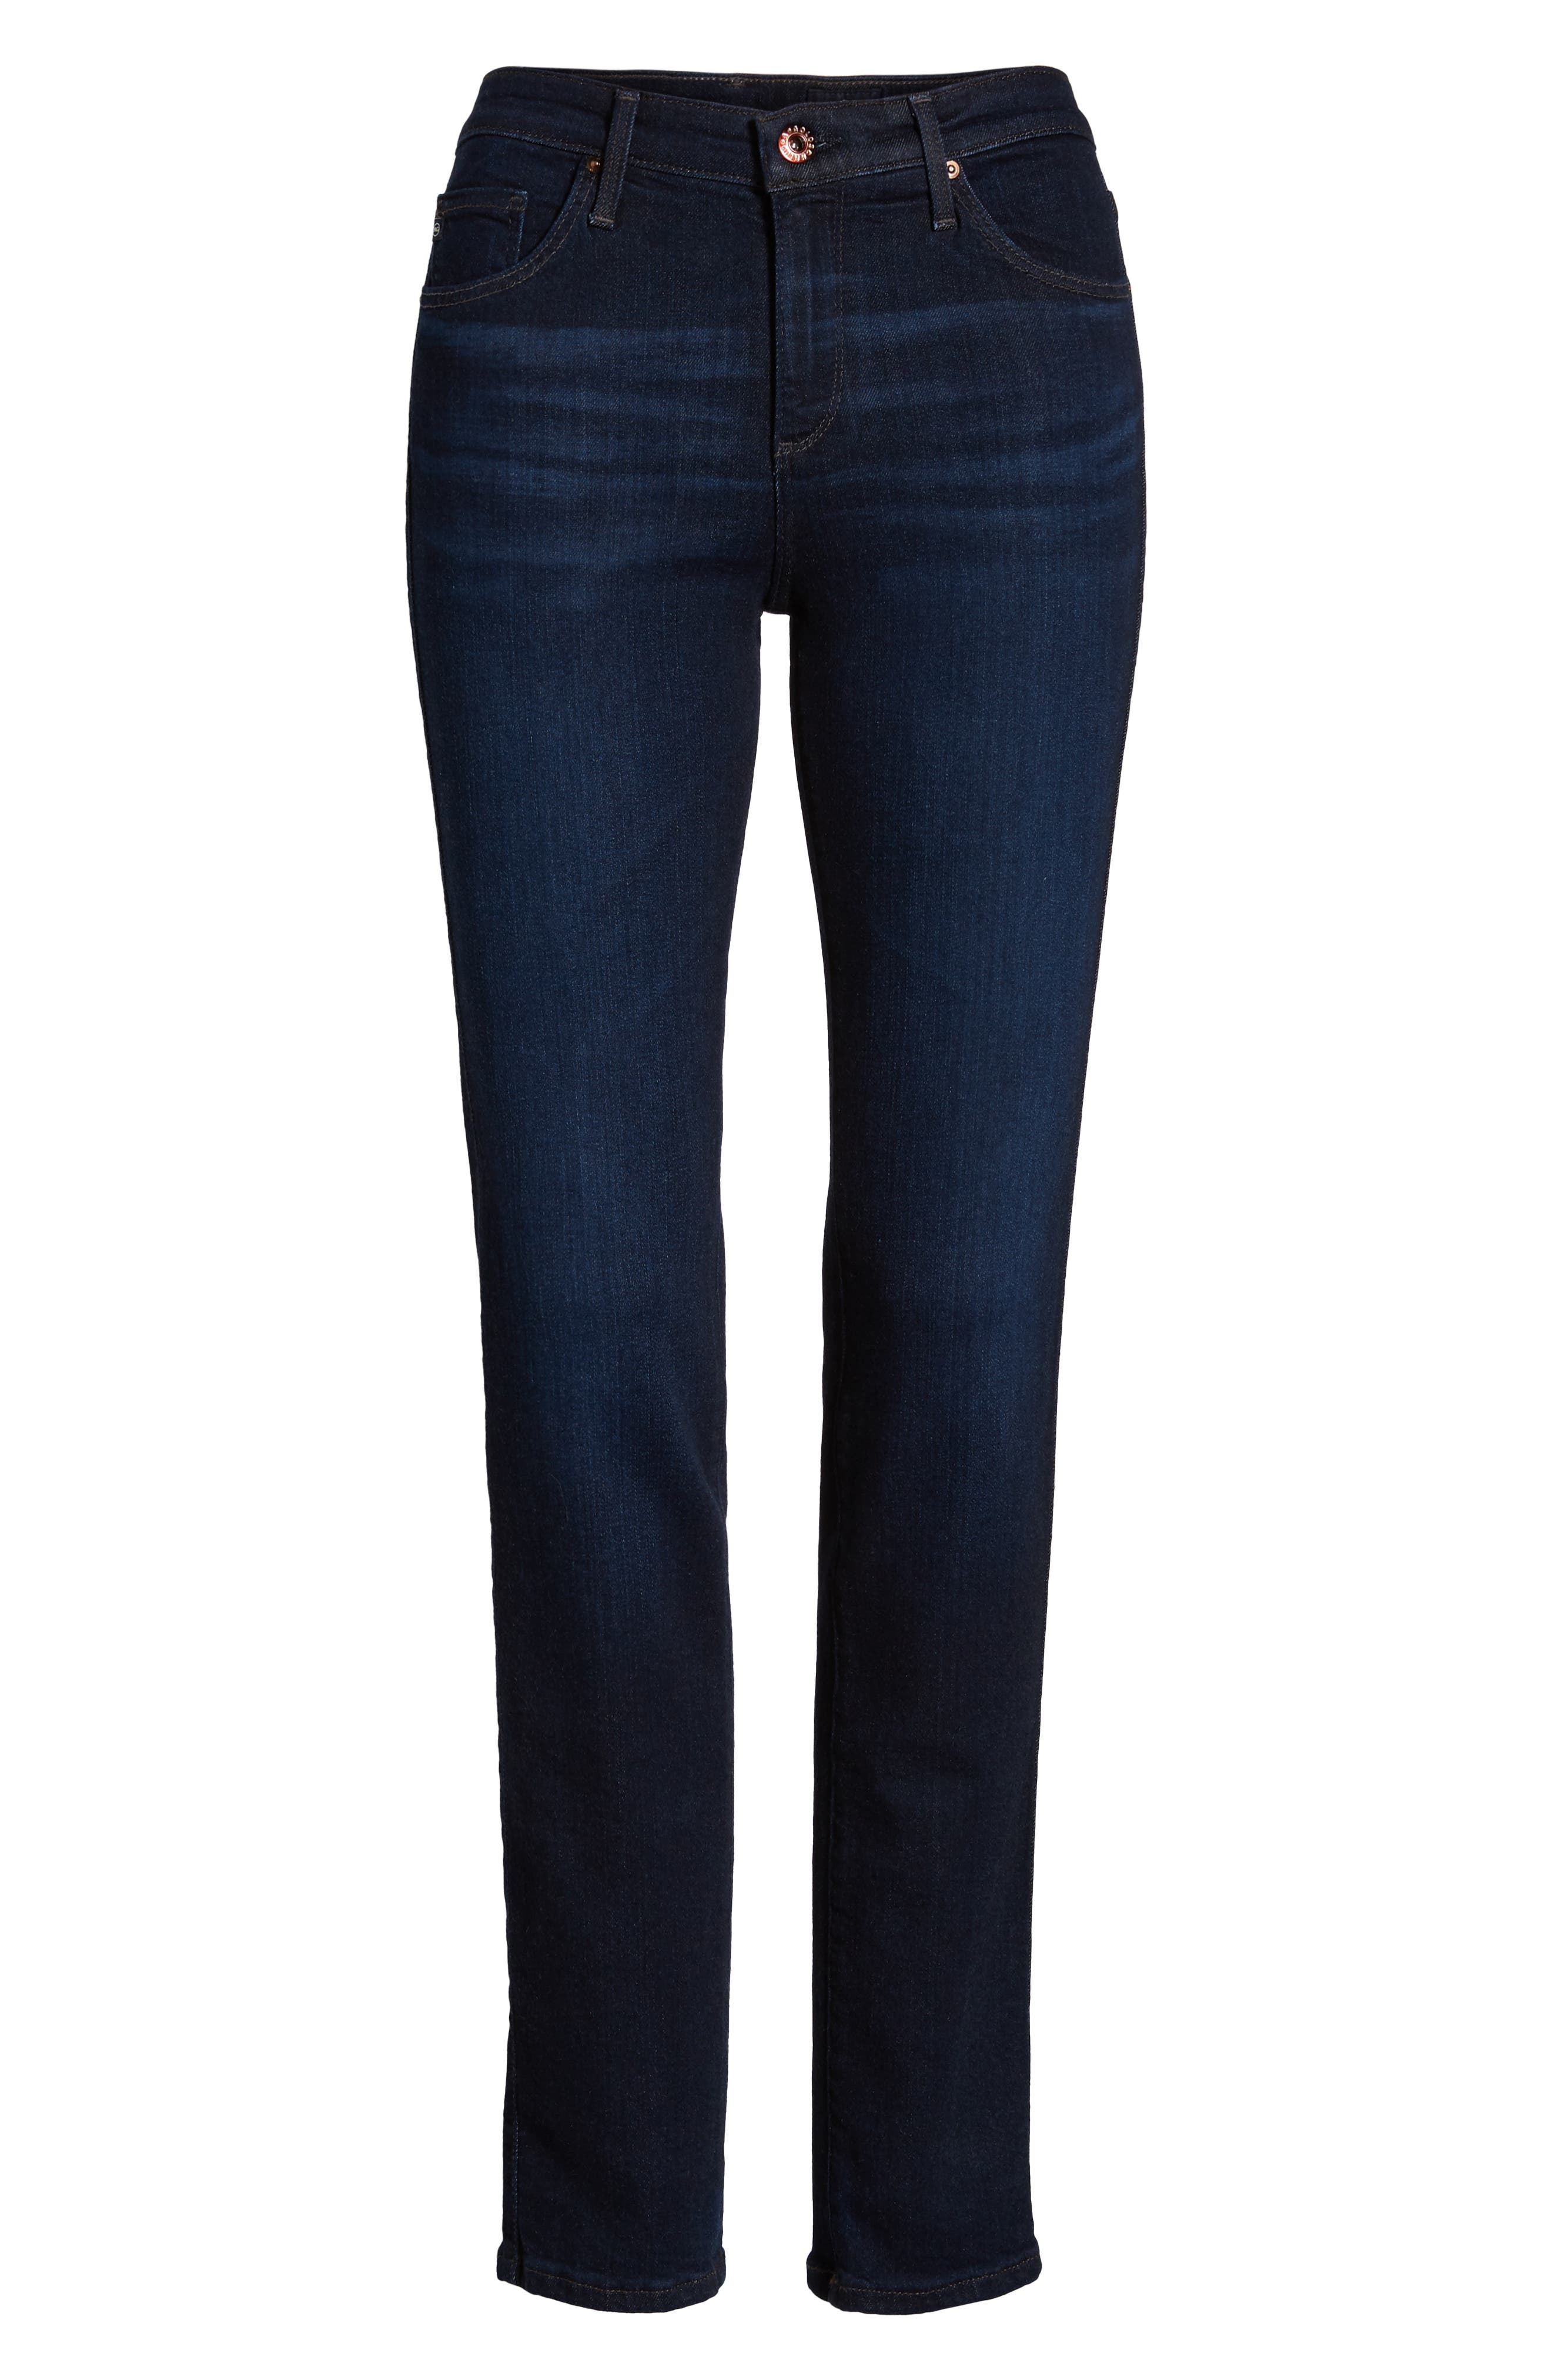 'Prima' Mid Rise Skinny Jeans,                             Alternate thumbnail 7, color,                             Glamour